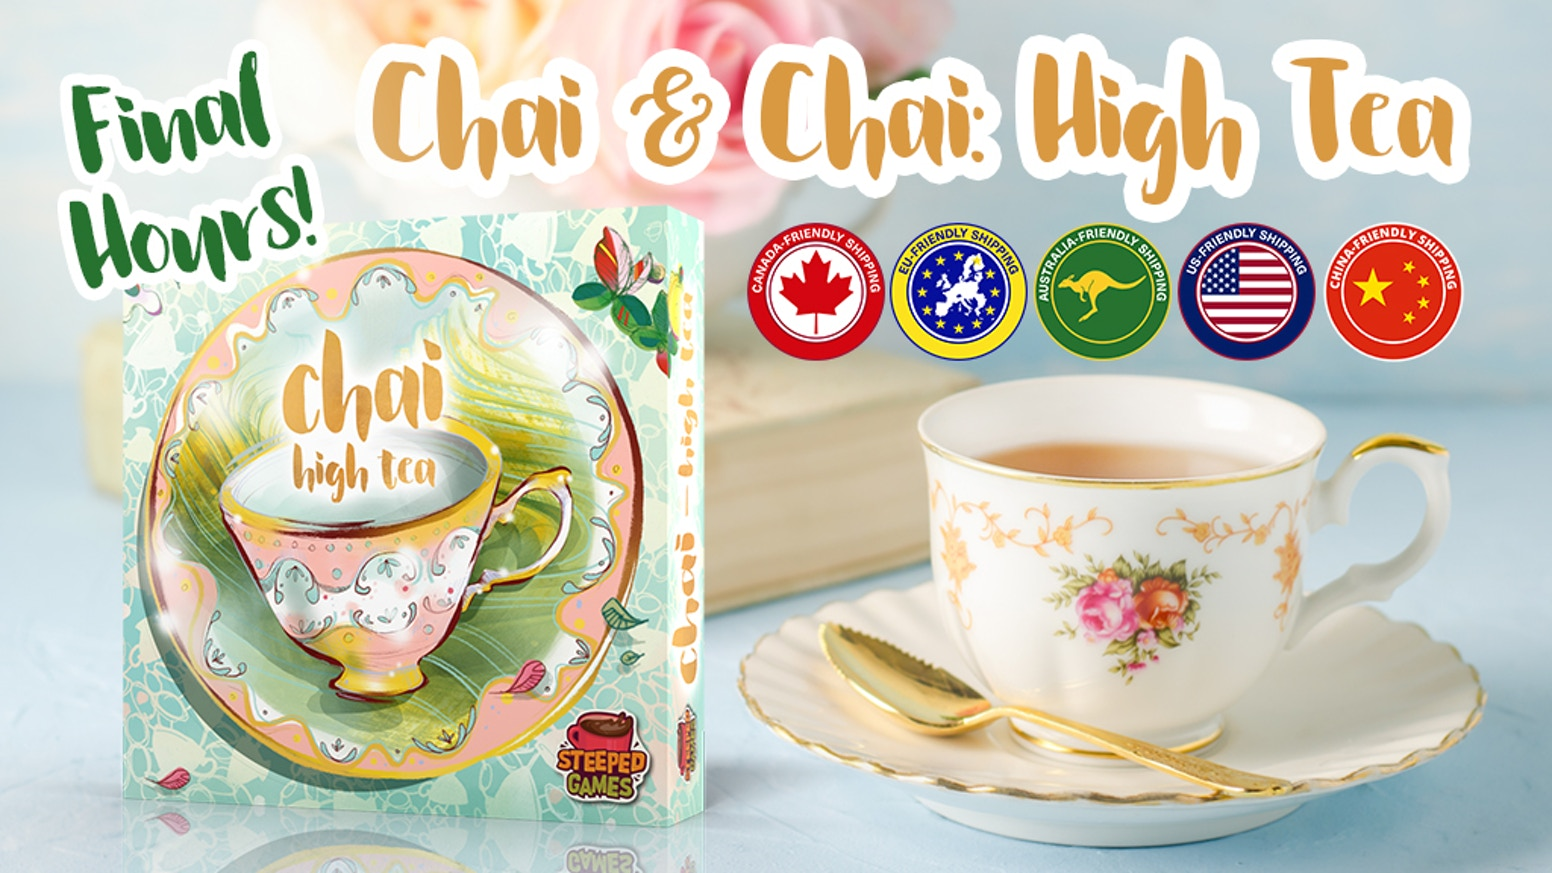 Celebrate the diversity of tea cultures in ☕️ Chai: High Tea, an expansion for ☕️ Chai!